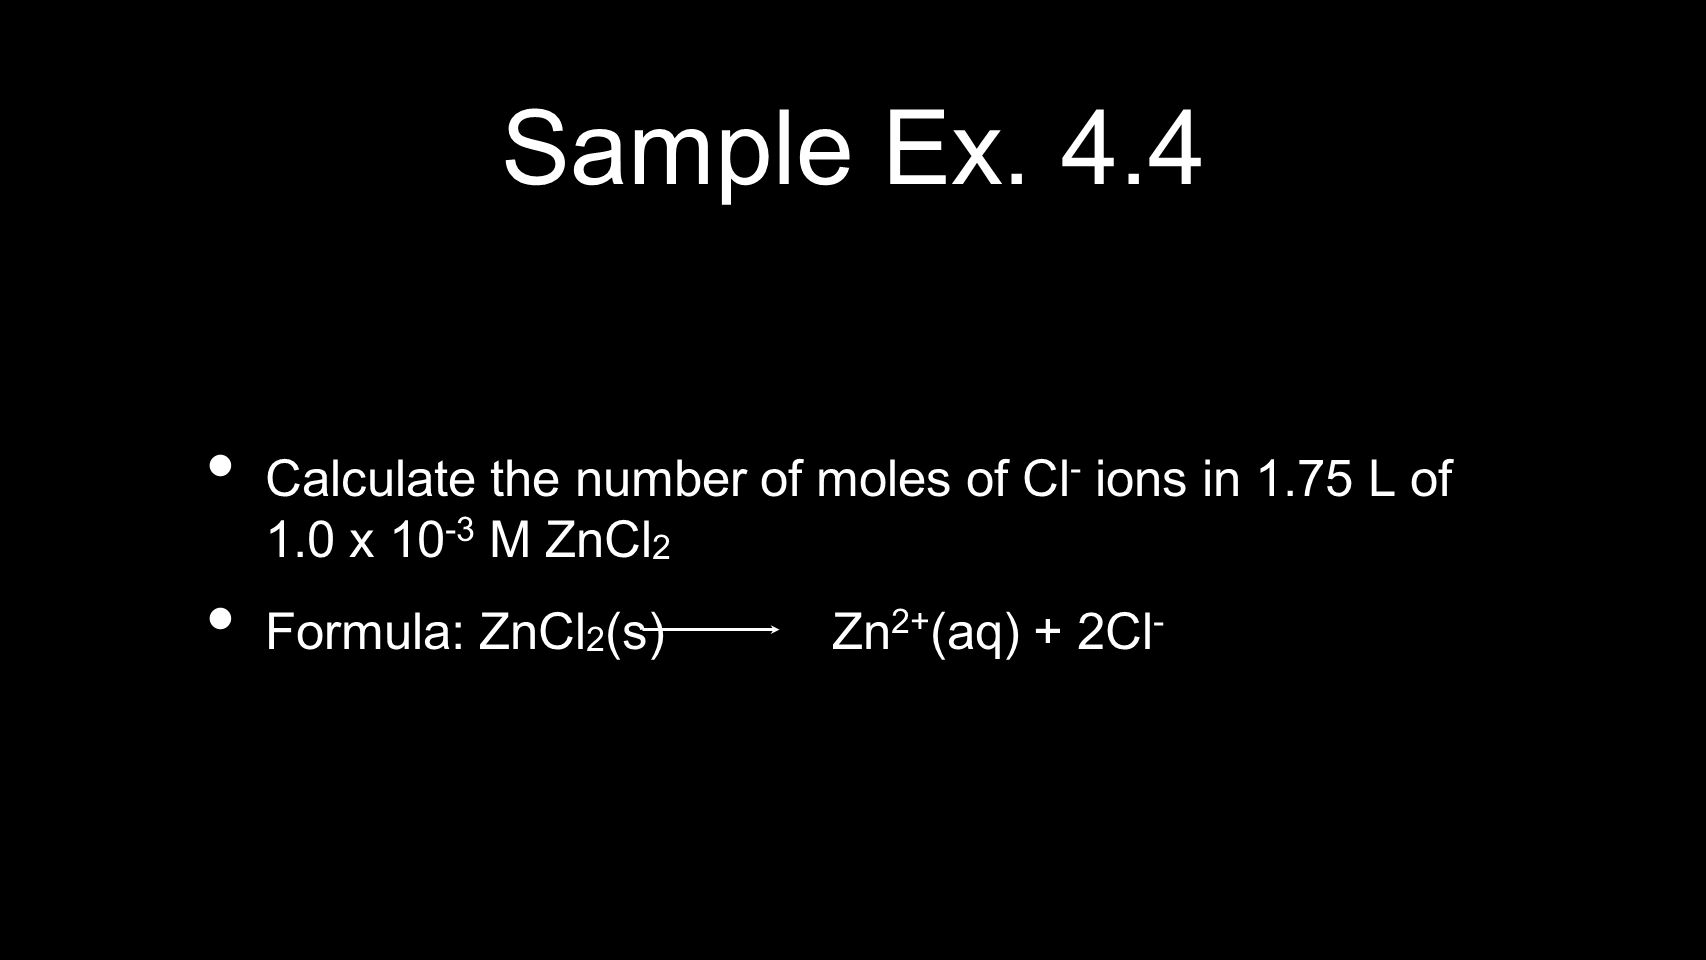 Sample Ex. 4.4 Calculate the number of moles of Cl - ions in 1.75 L of 1.0 x 10 -3 M ZnCl 2 Formula: ZnCl 2 (s) Zn 2+ (aq) + 2Cl -